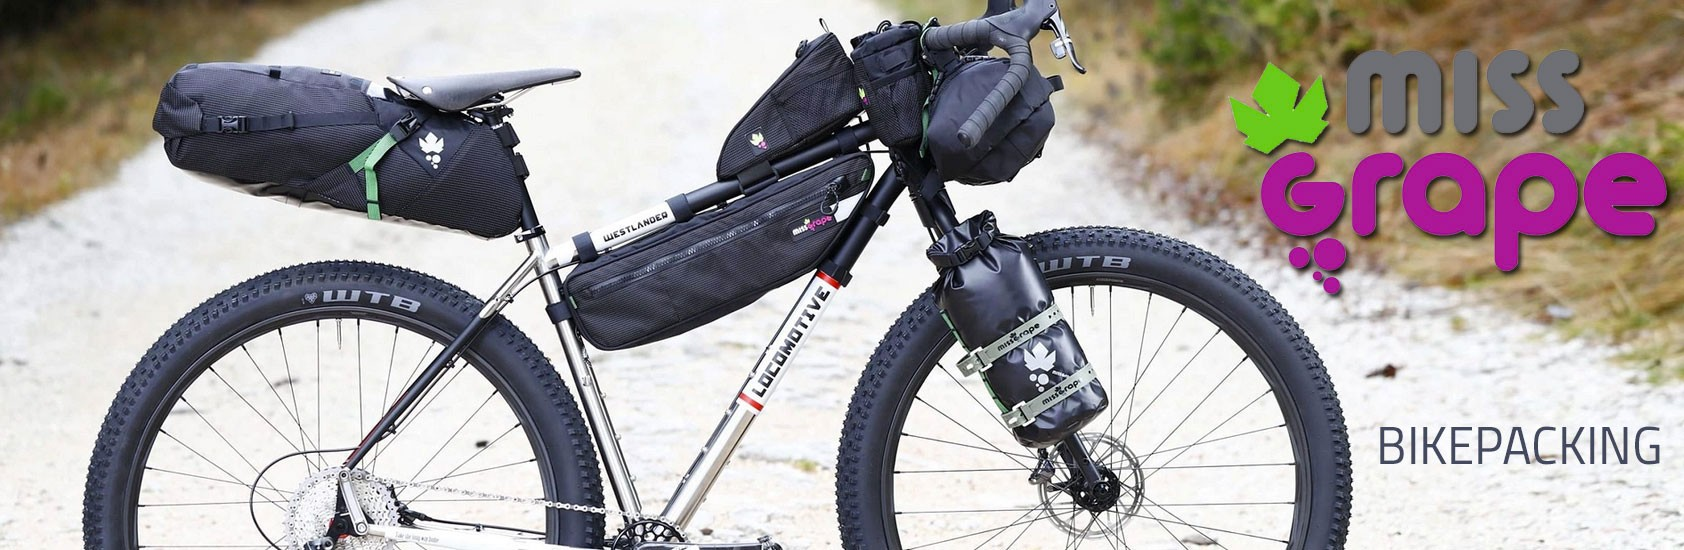 MISS GRAPE BIKEPACKING